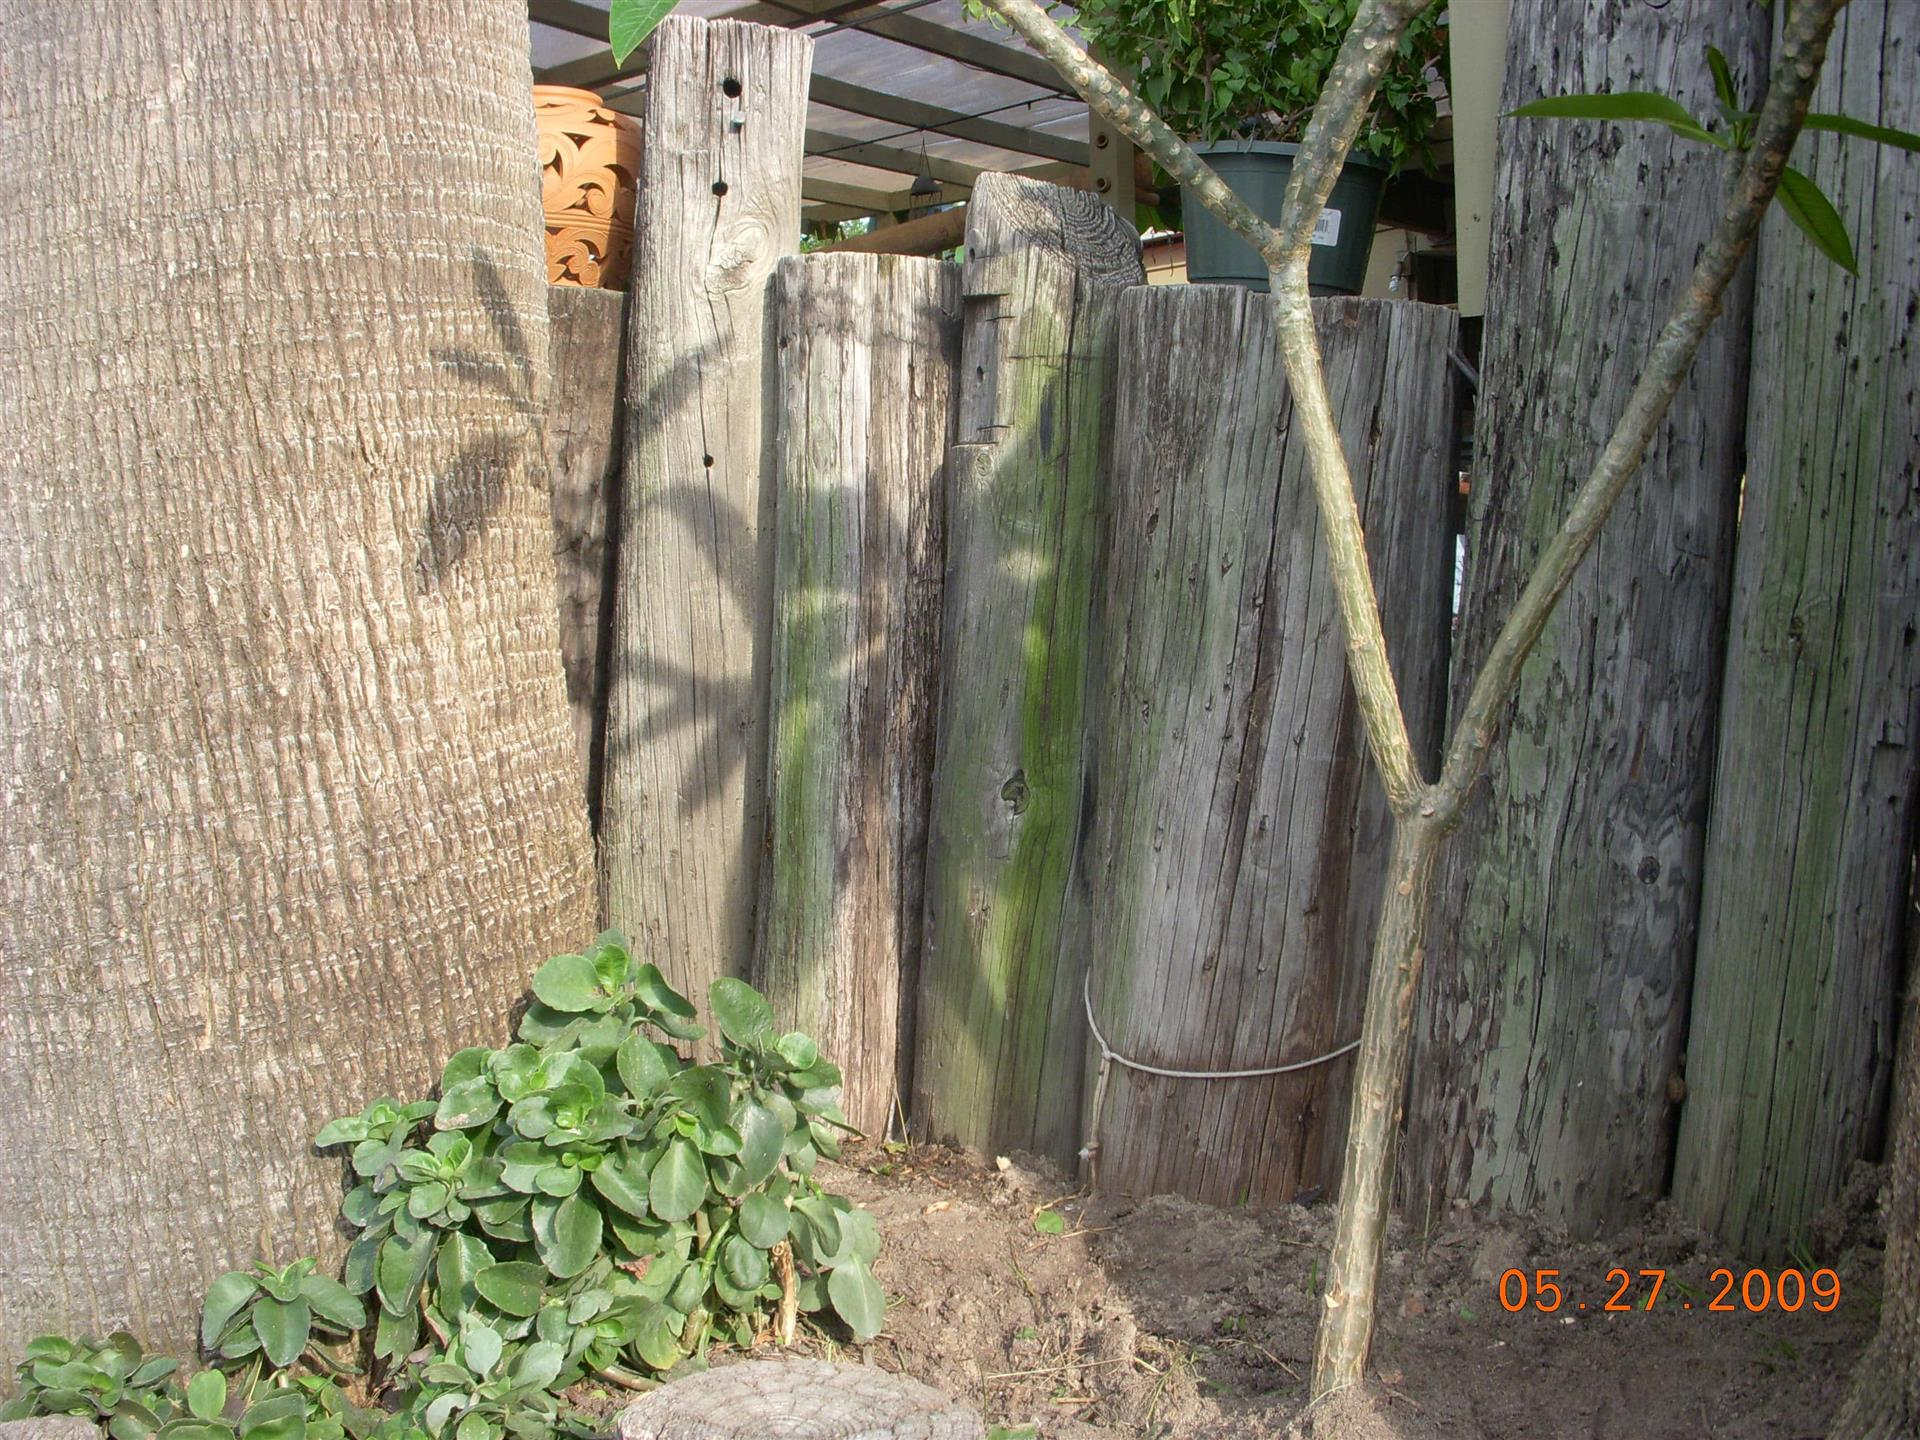 Wooden fence next to tree sapling